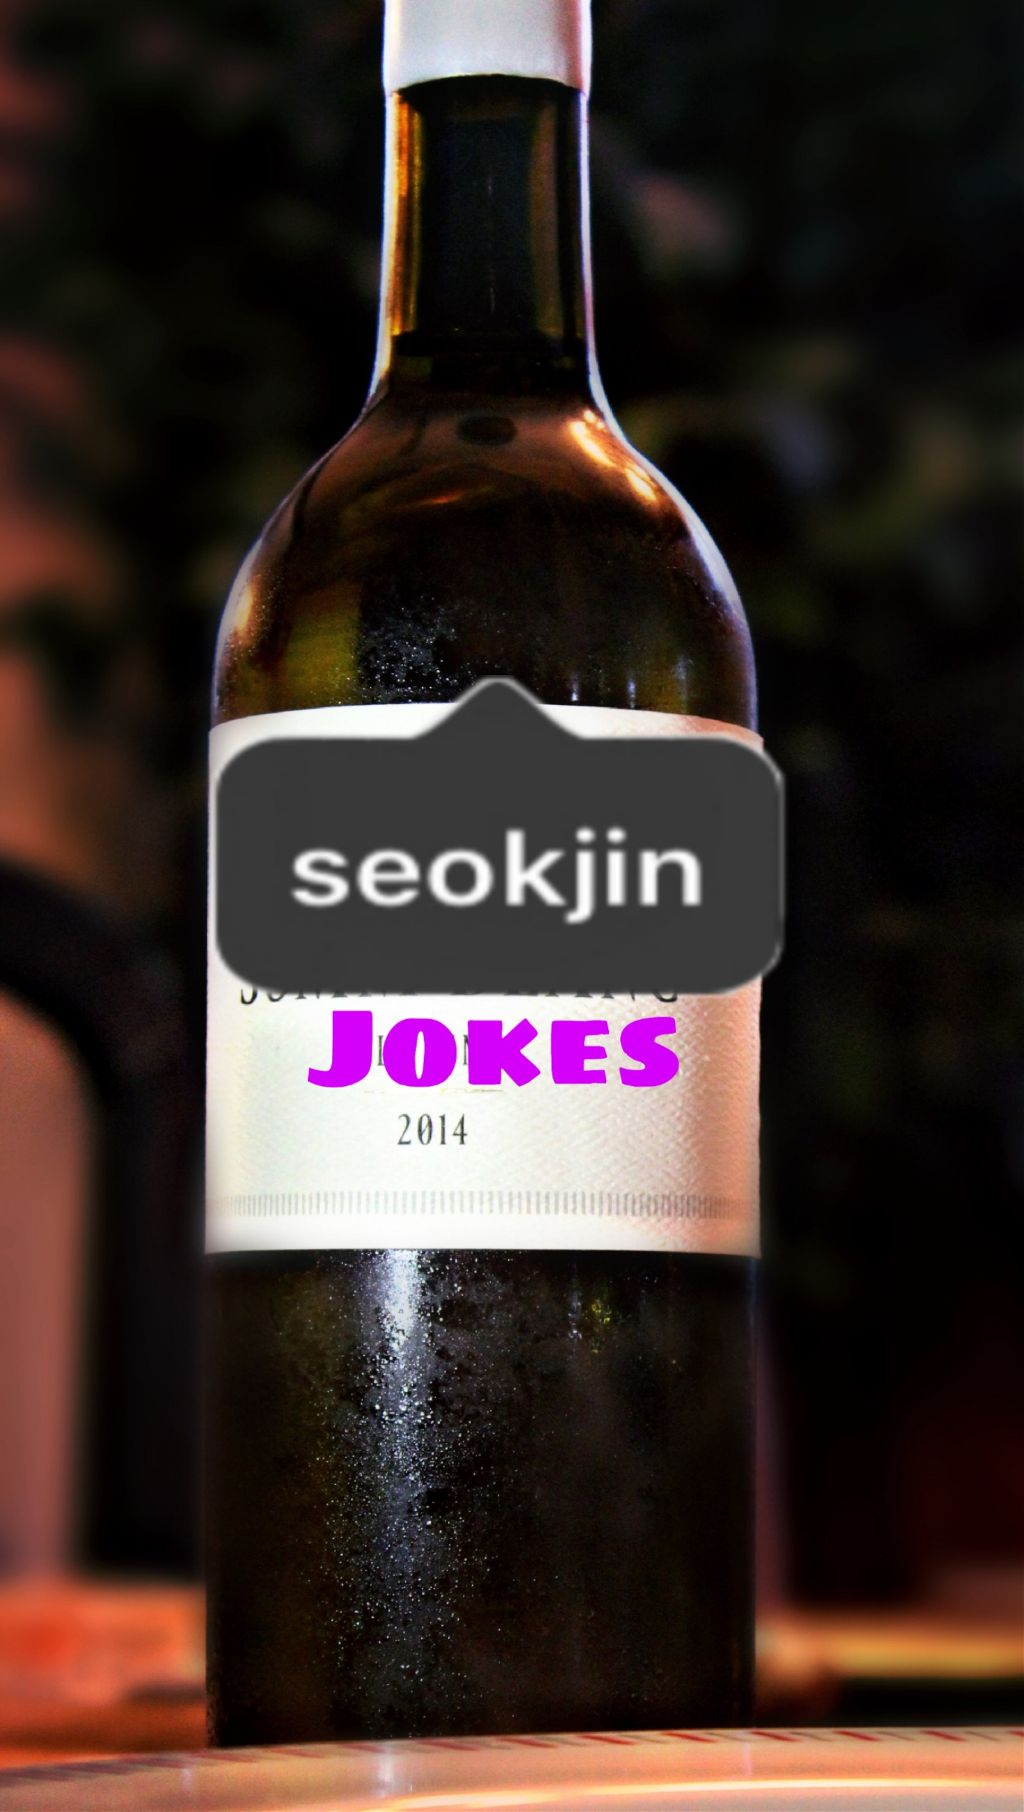 jin bts dadjokes jokes funny laugh crazy kimseokjin❤